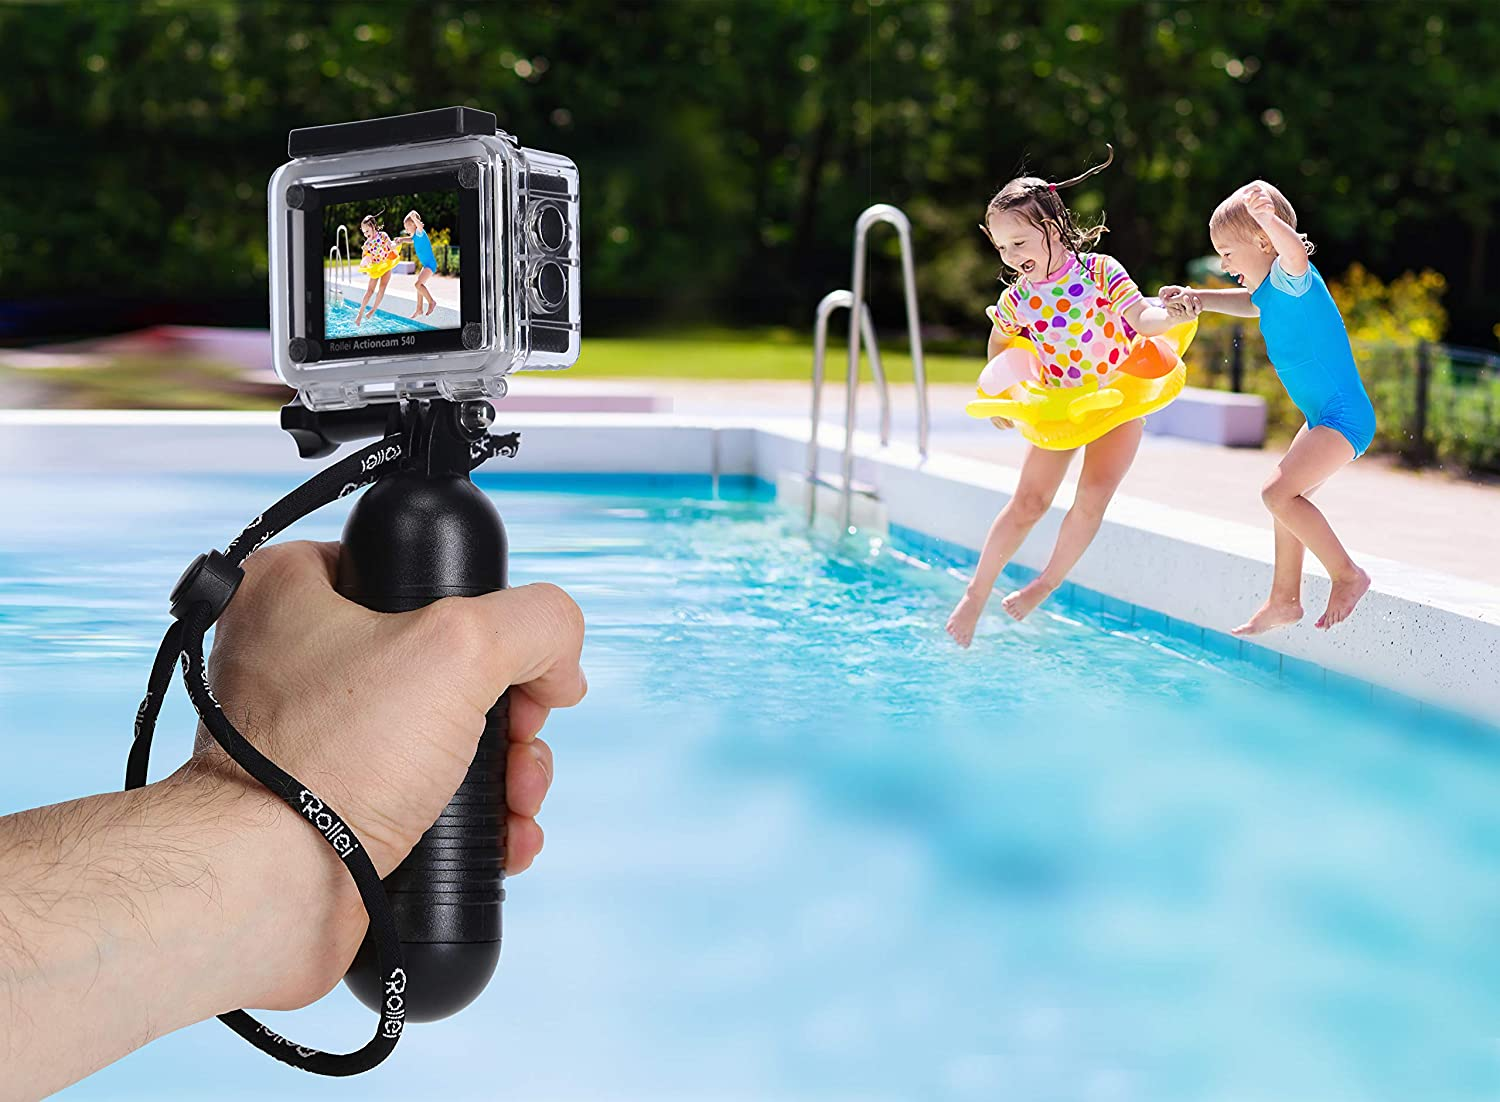 Rollei Actioncam 540 – WiFi Action CAM con Resolución de Vídeo 4 K y Gran Angular, hasta 40 m Impermeable, Incluye Unterwasserschutzgehäuse